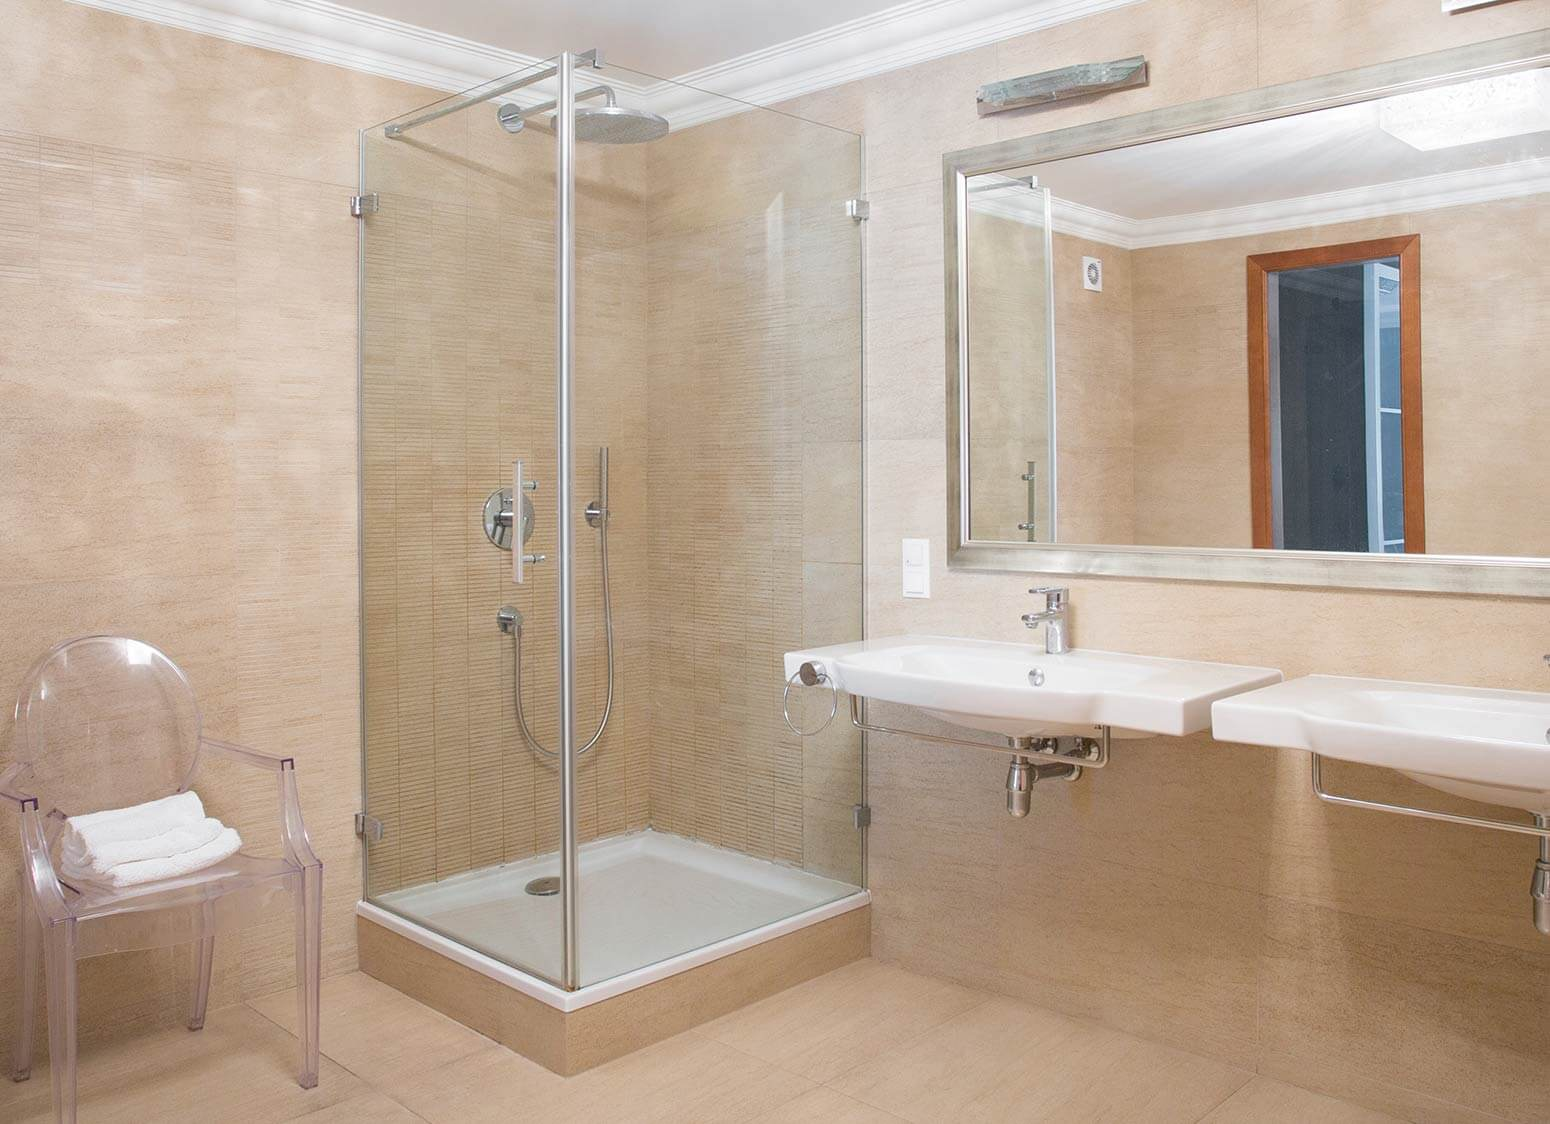 Showers scunthorpe electric showers scunthorpe power for Quality bathrooms